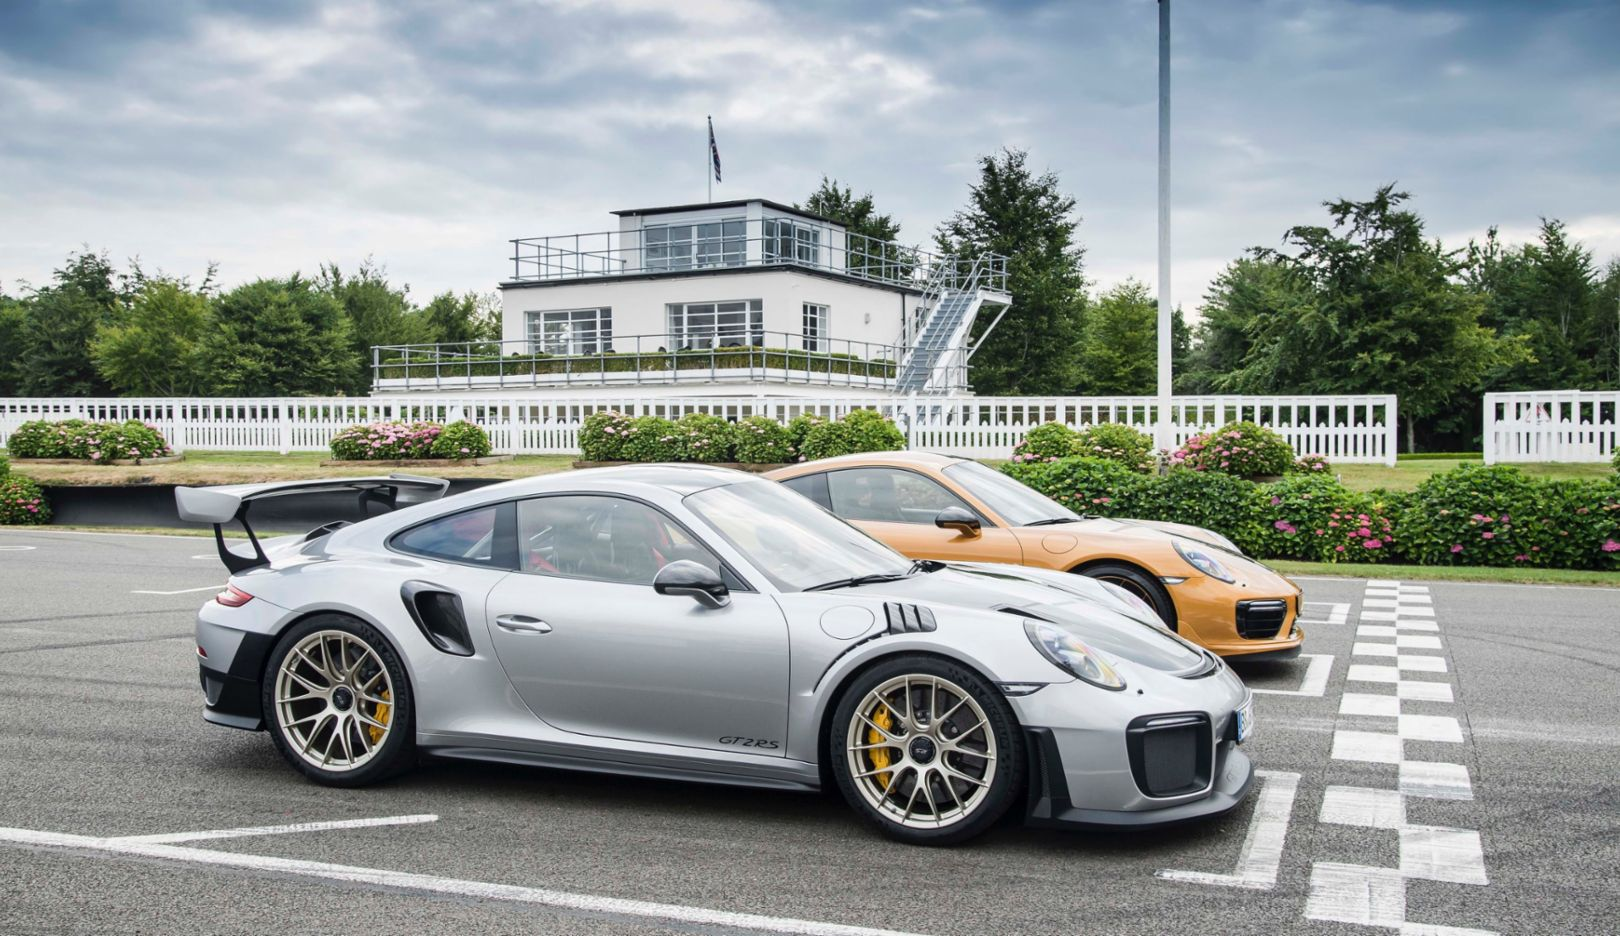 911 GT2 RS, 911 Turbo S Exclusive Series, 2017, Porsche AG